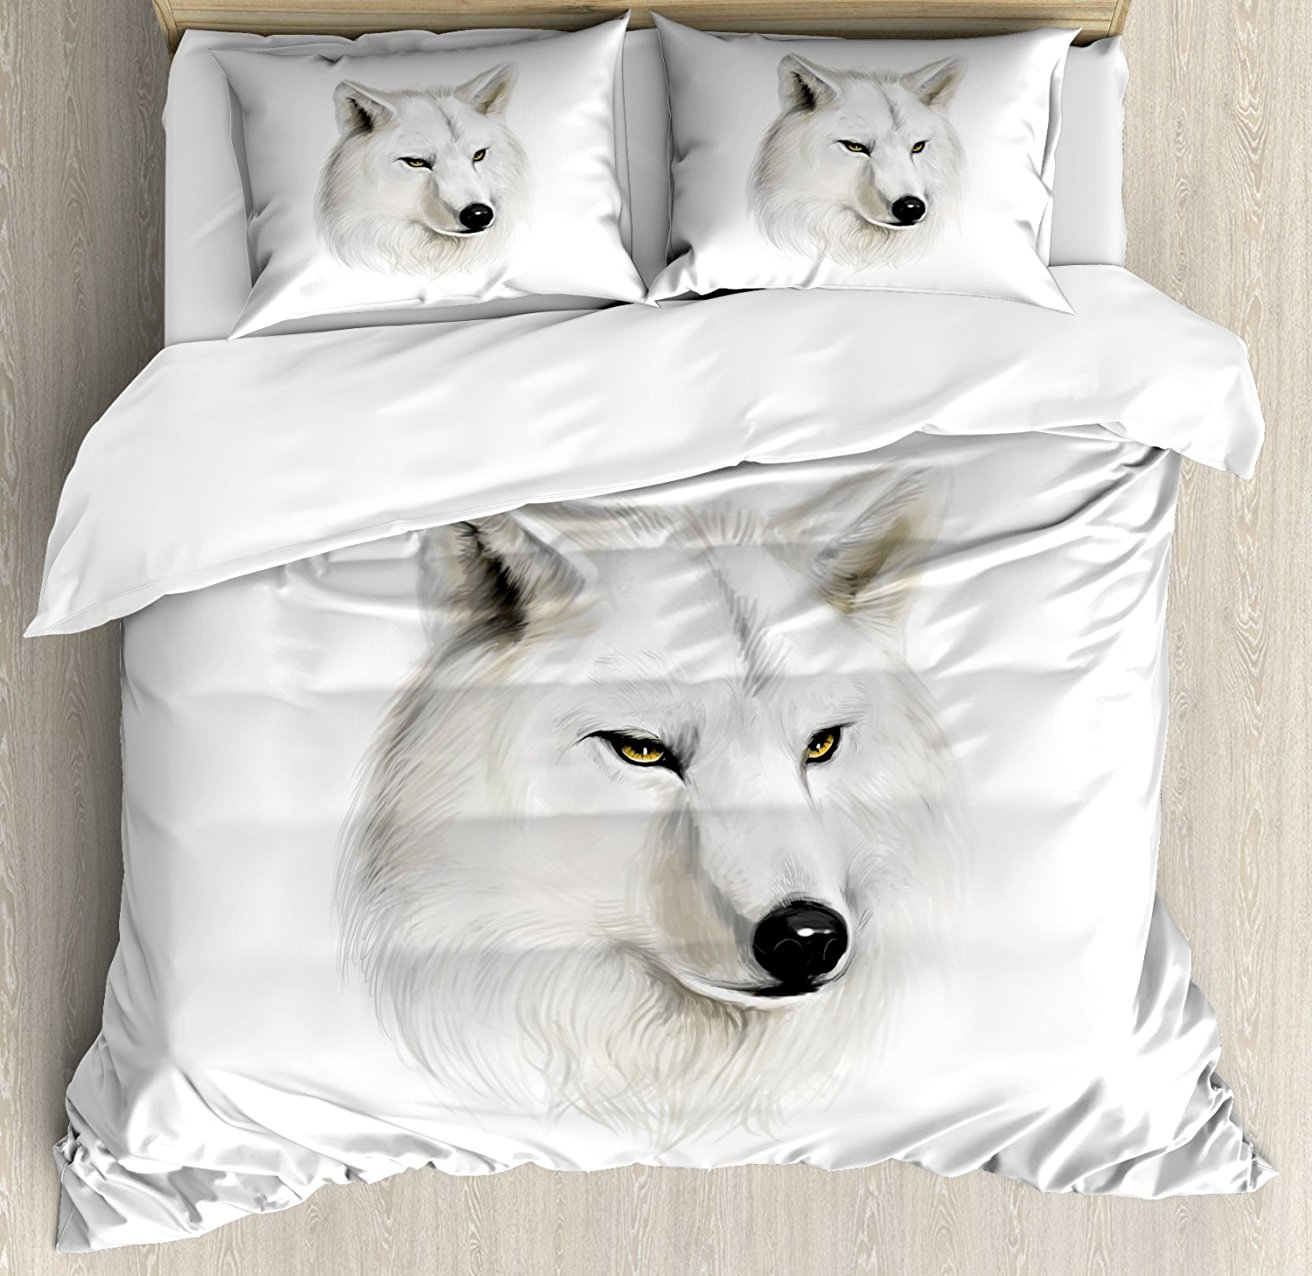 Wolf Duvet Cover Set White Canine Head with Great Detail Hunter Mammal Wildlife Nature Scene Art 4 Piece Bedding Set